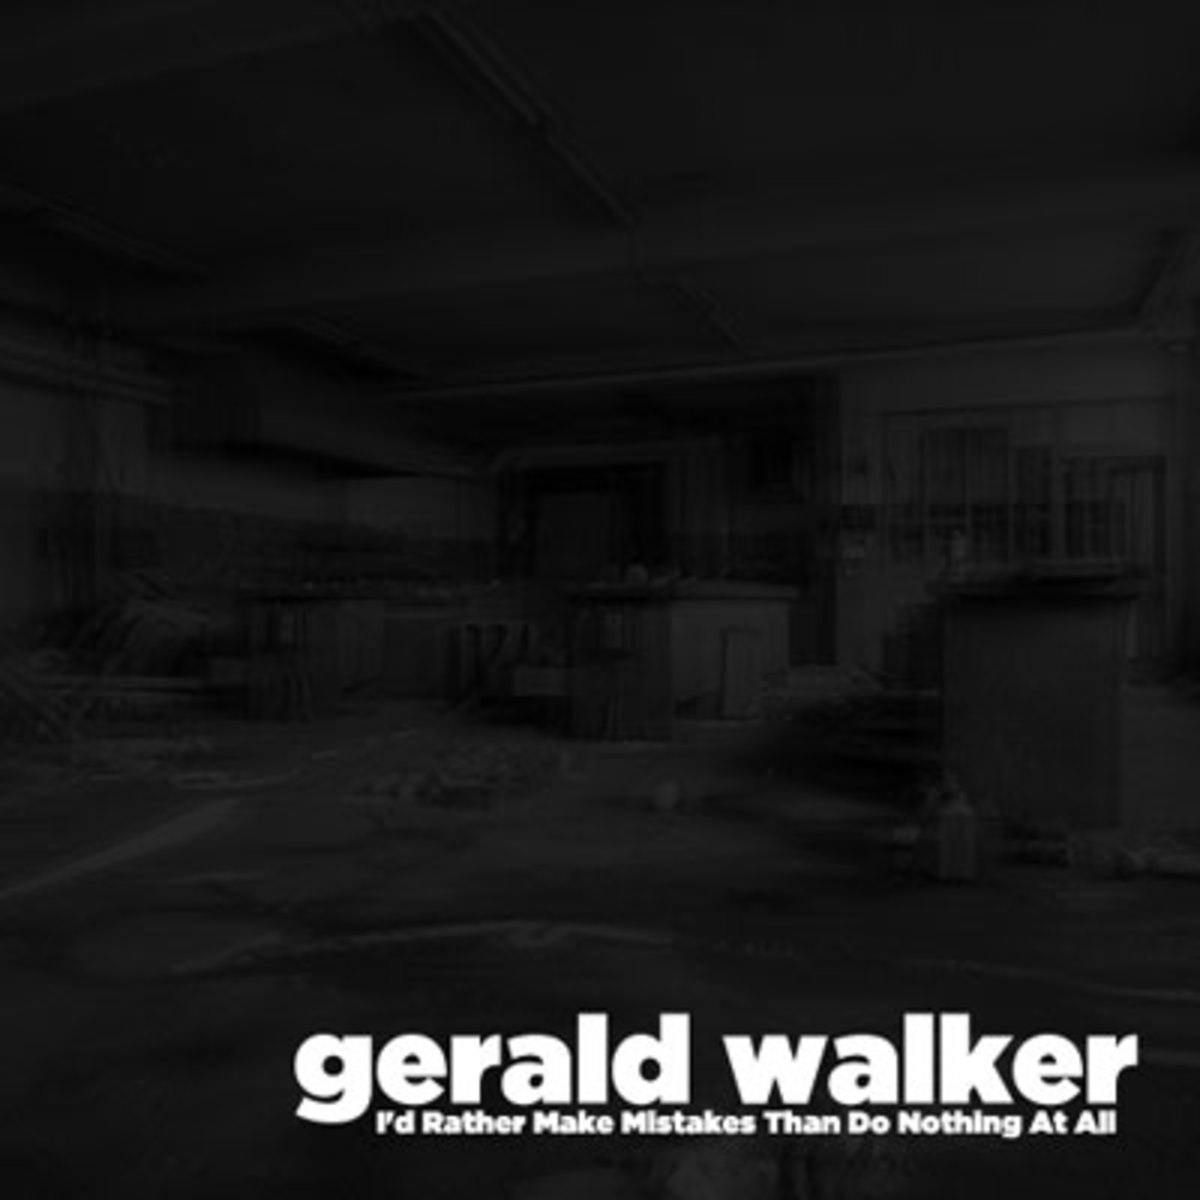 geraldwalker-mistakes.jpg